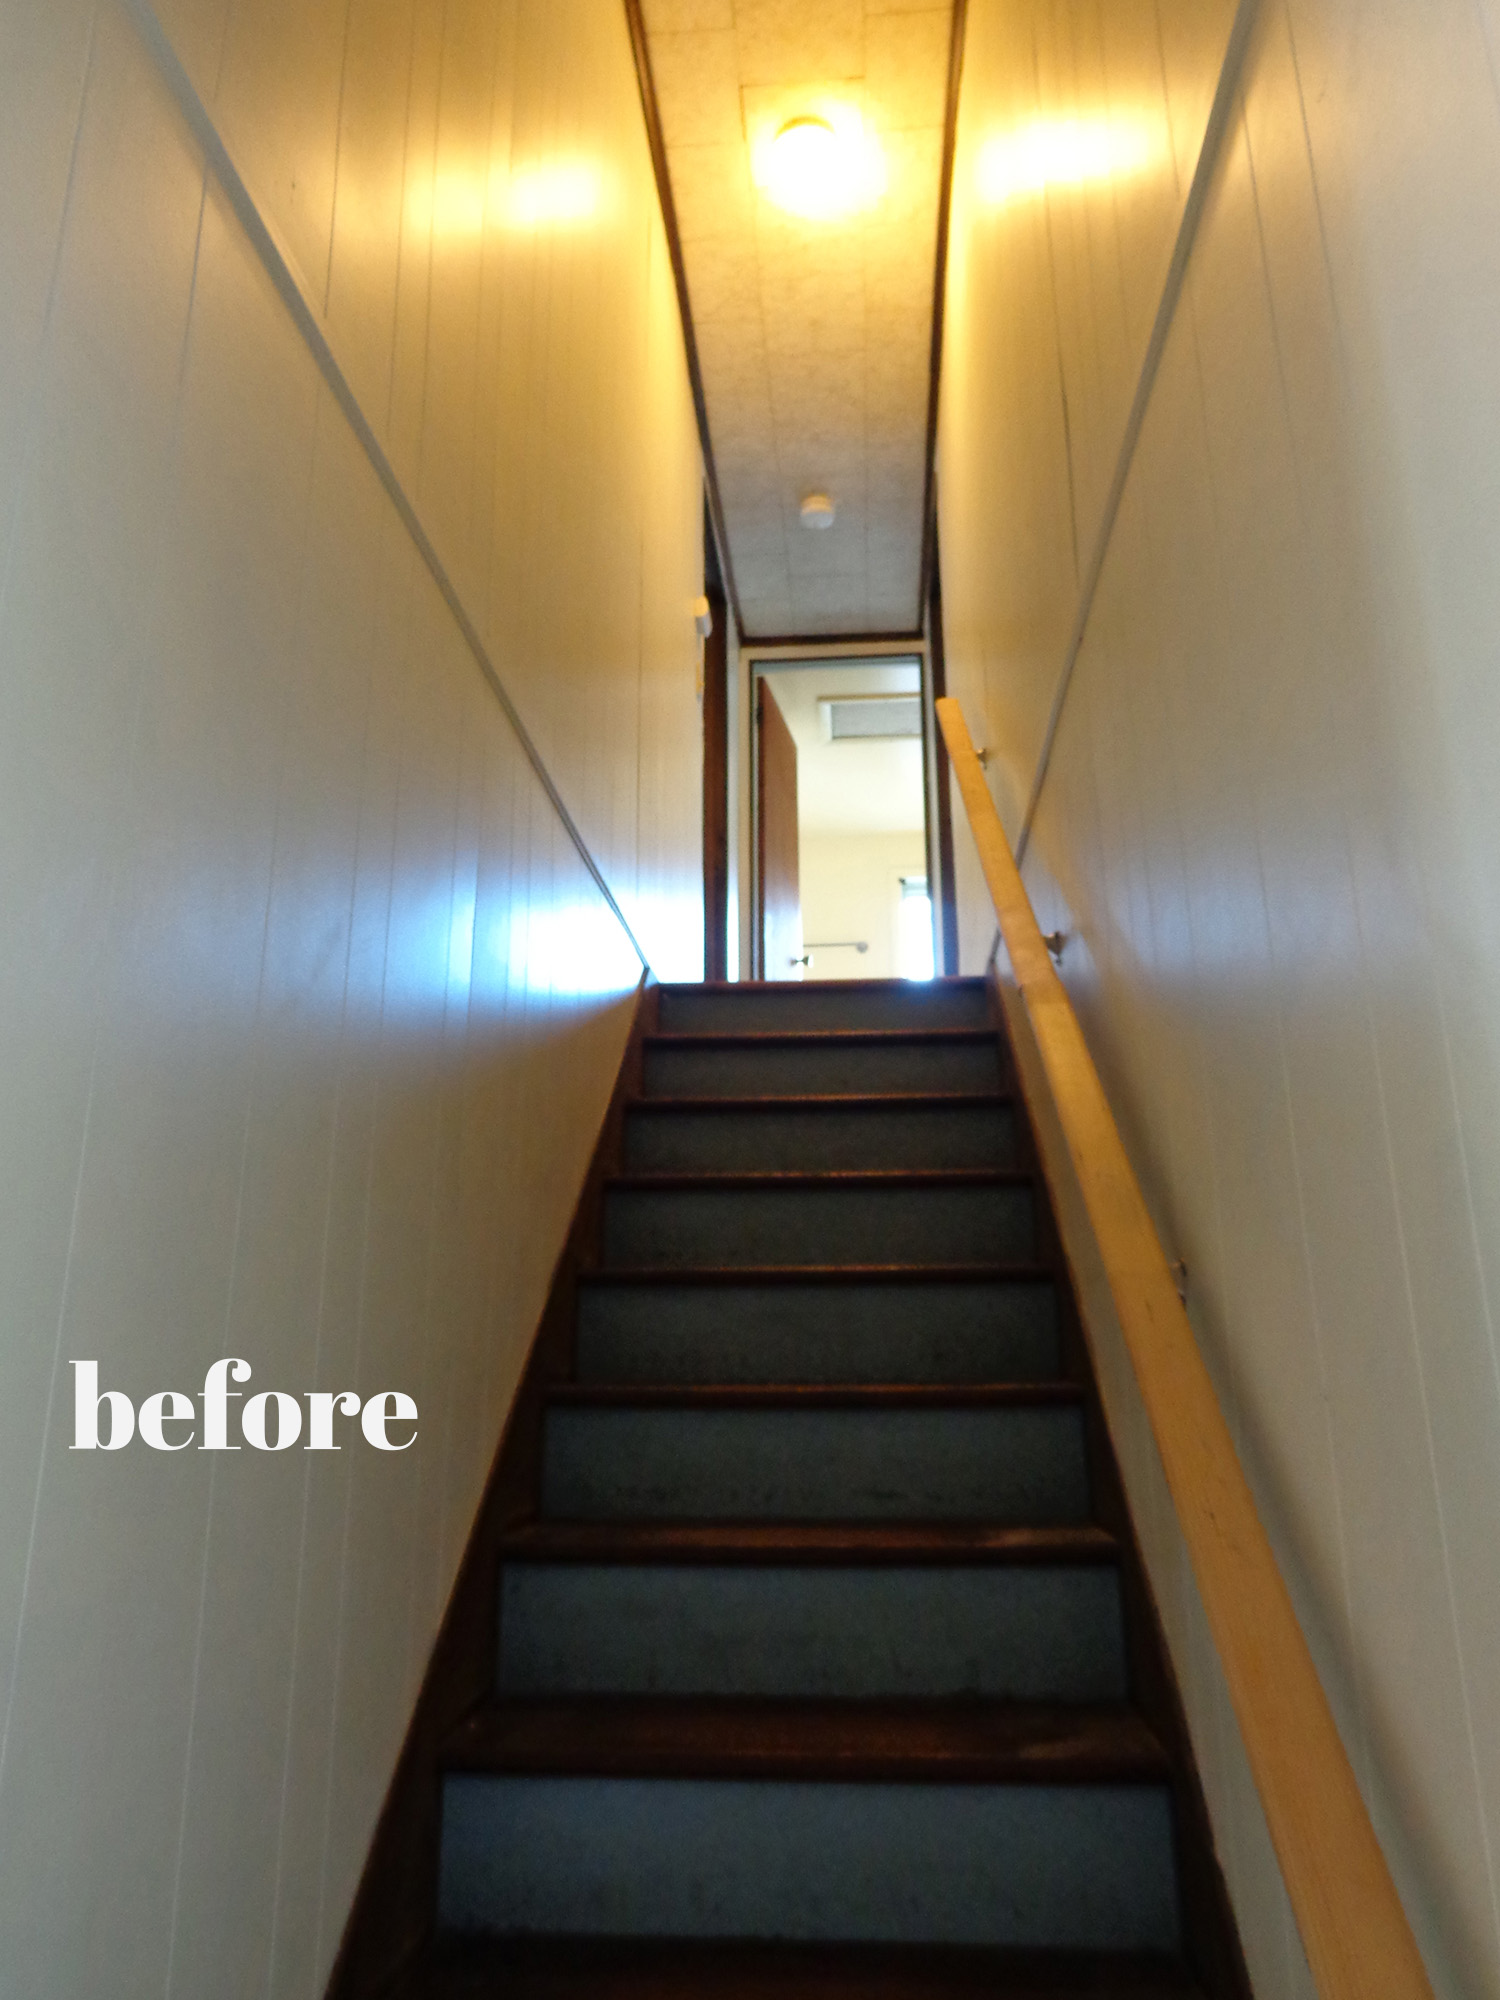 An affordable staircase update - check out the before & afters! House renovation that is practical and still transforms a space! From danielleandco.com